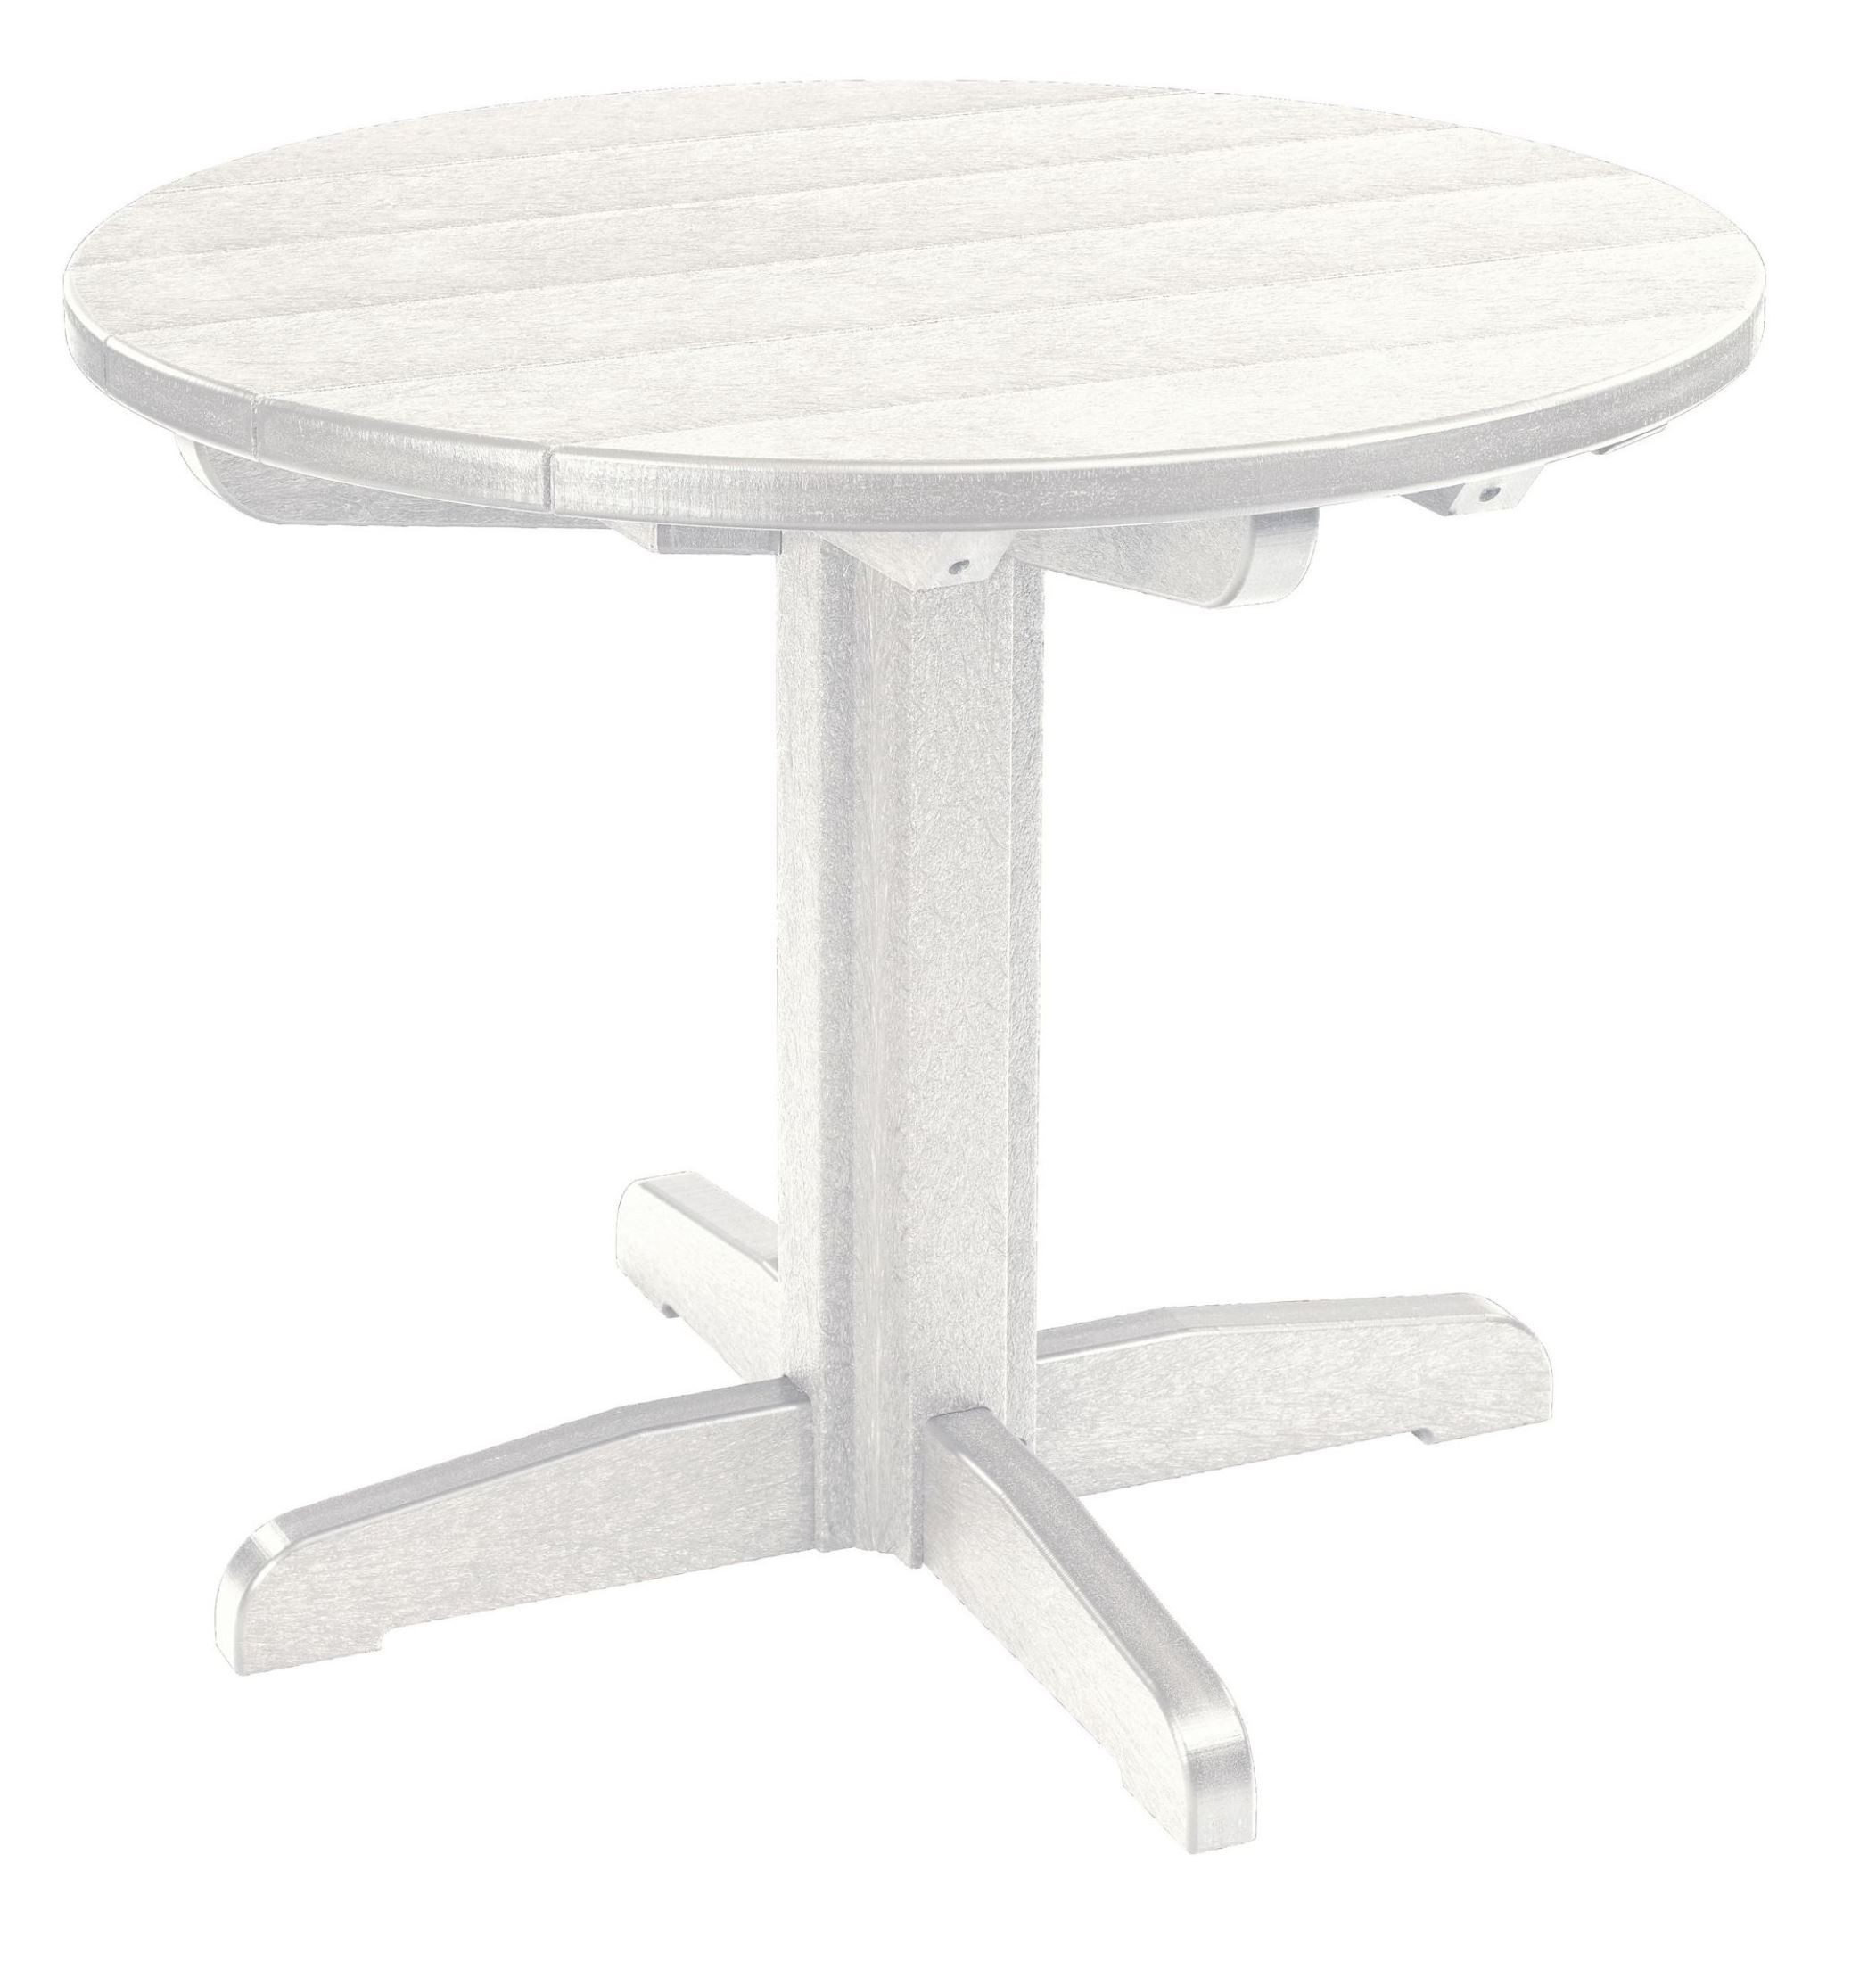 generations white 32 round pedestal dining table from cr plastic